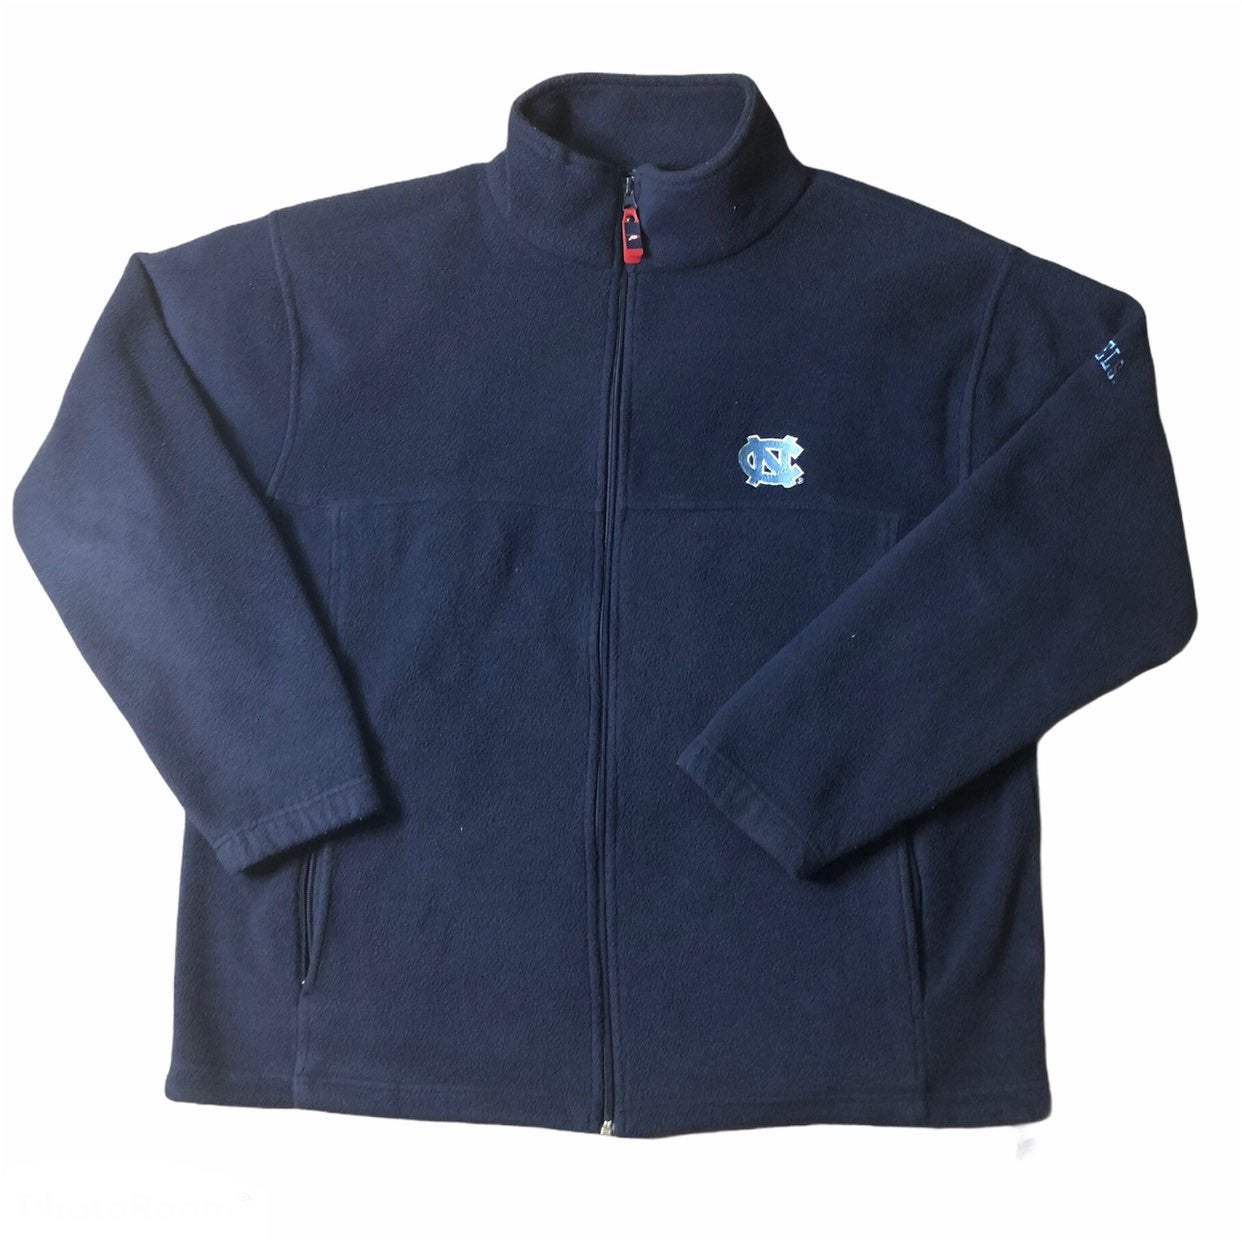 UNC Tar Heels Fleece Jacket Large